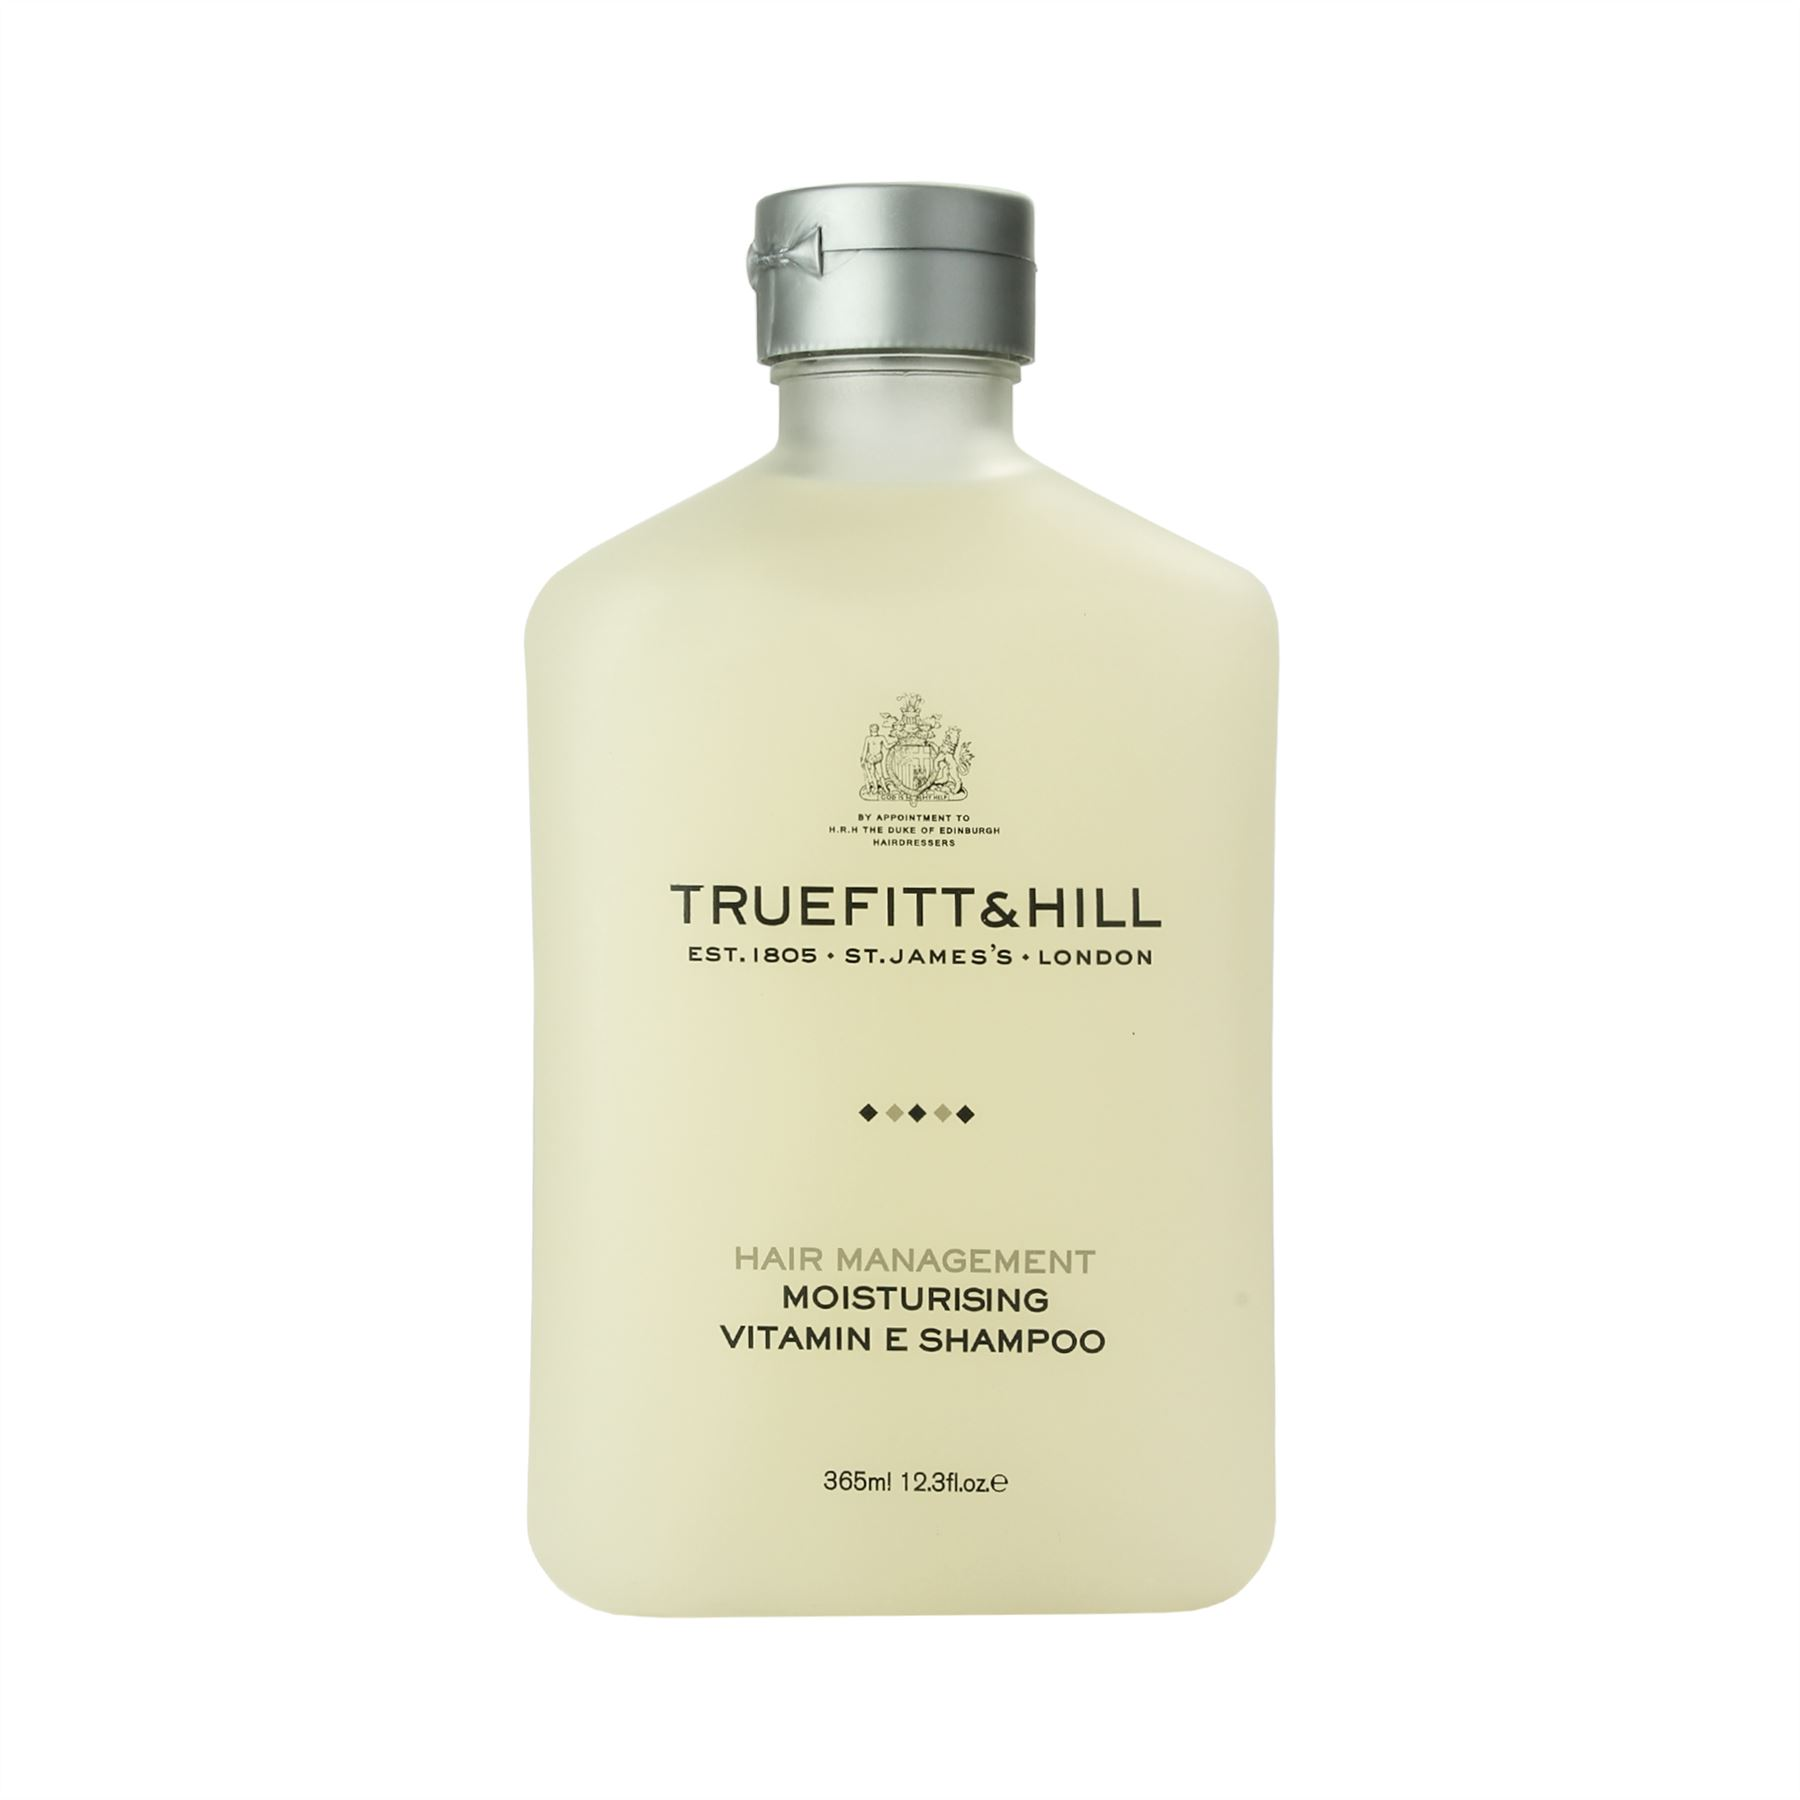 Fragrances - Truefitt & Hill US